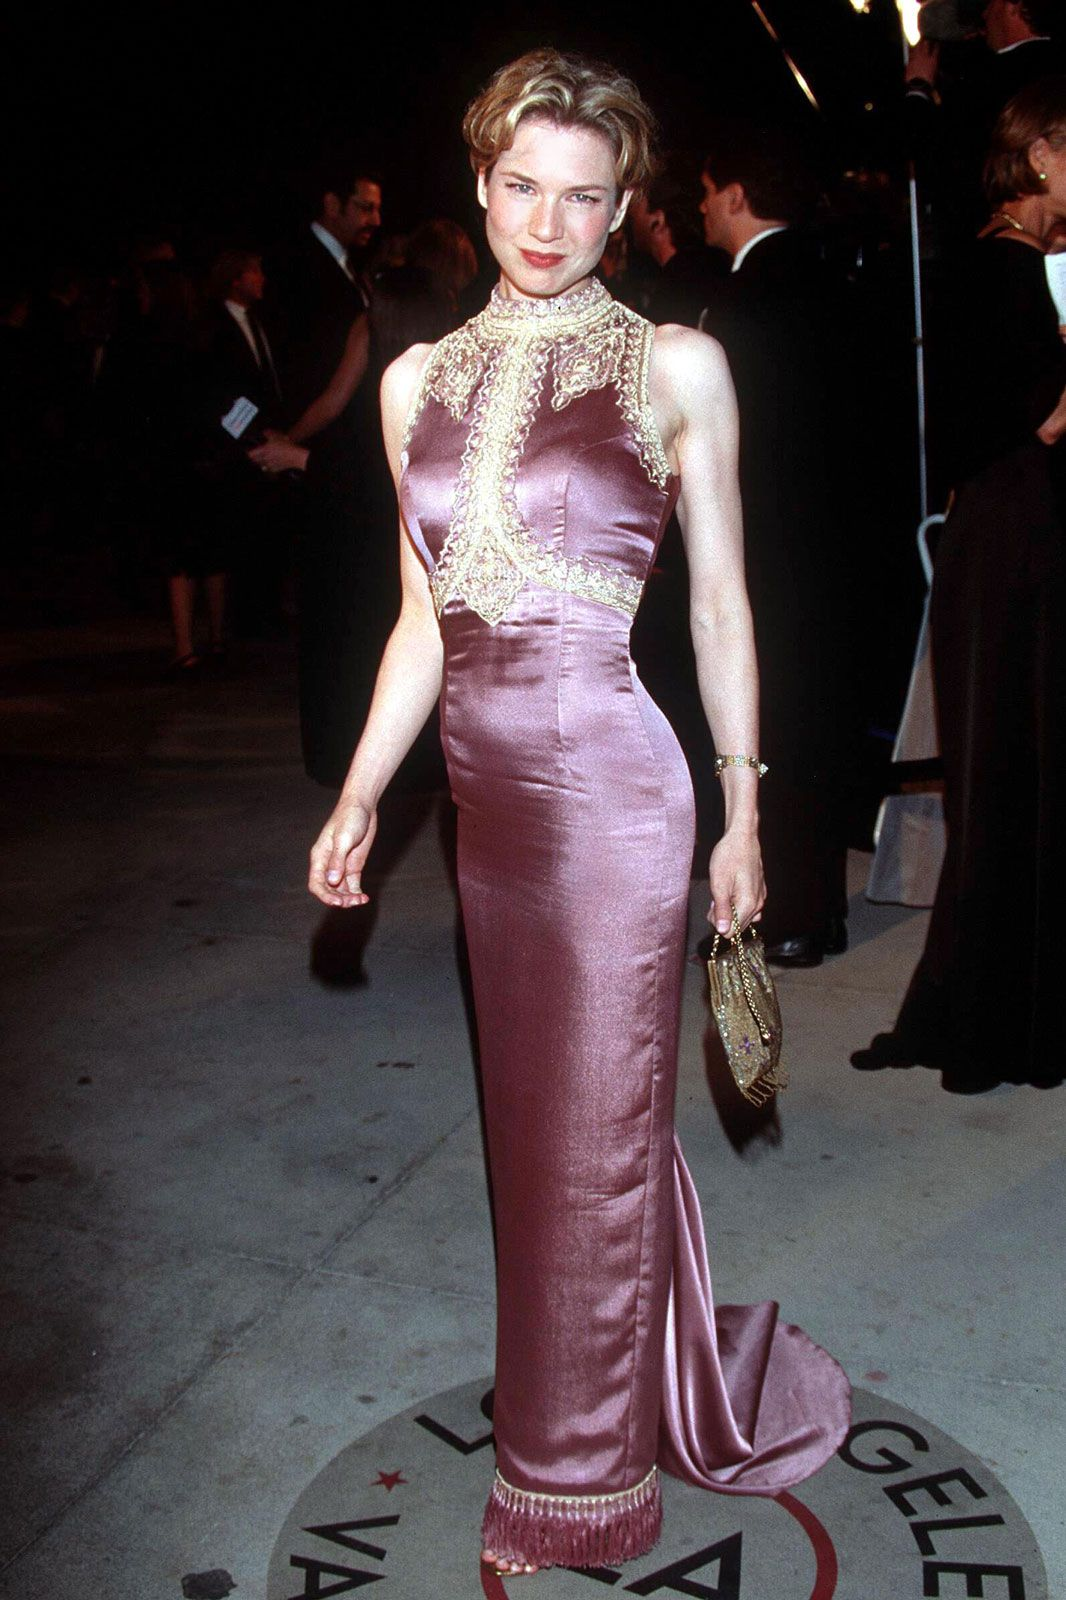 Oscars Worst Dressed Of All Time Bad Red Carpet Looks Oscars Worst Dressed Red Carpet Fashion Red Carpet Looks